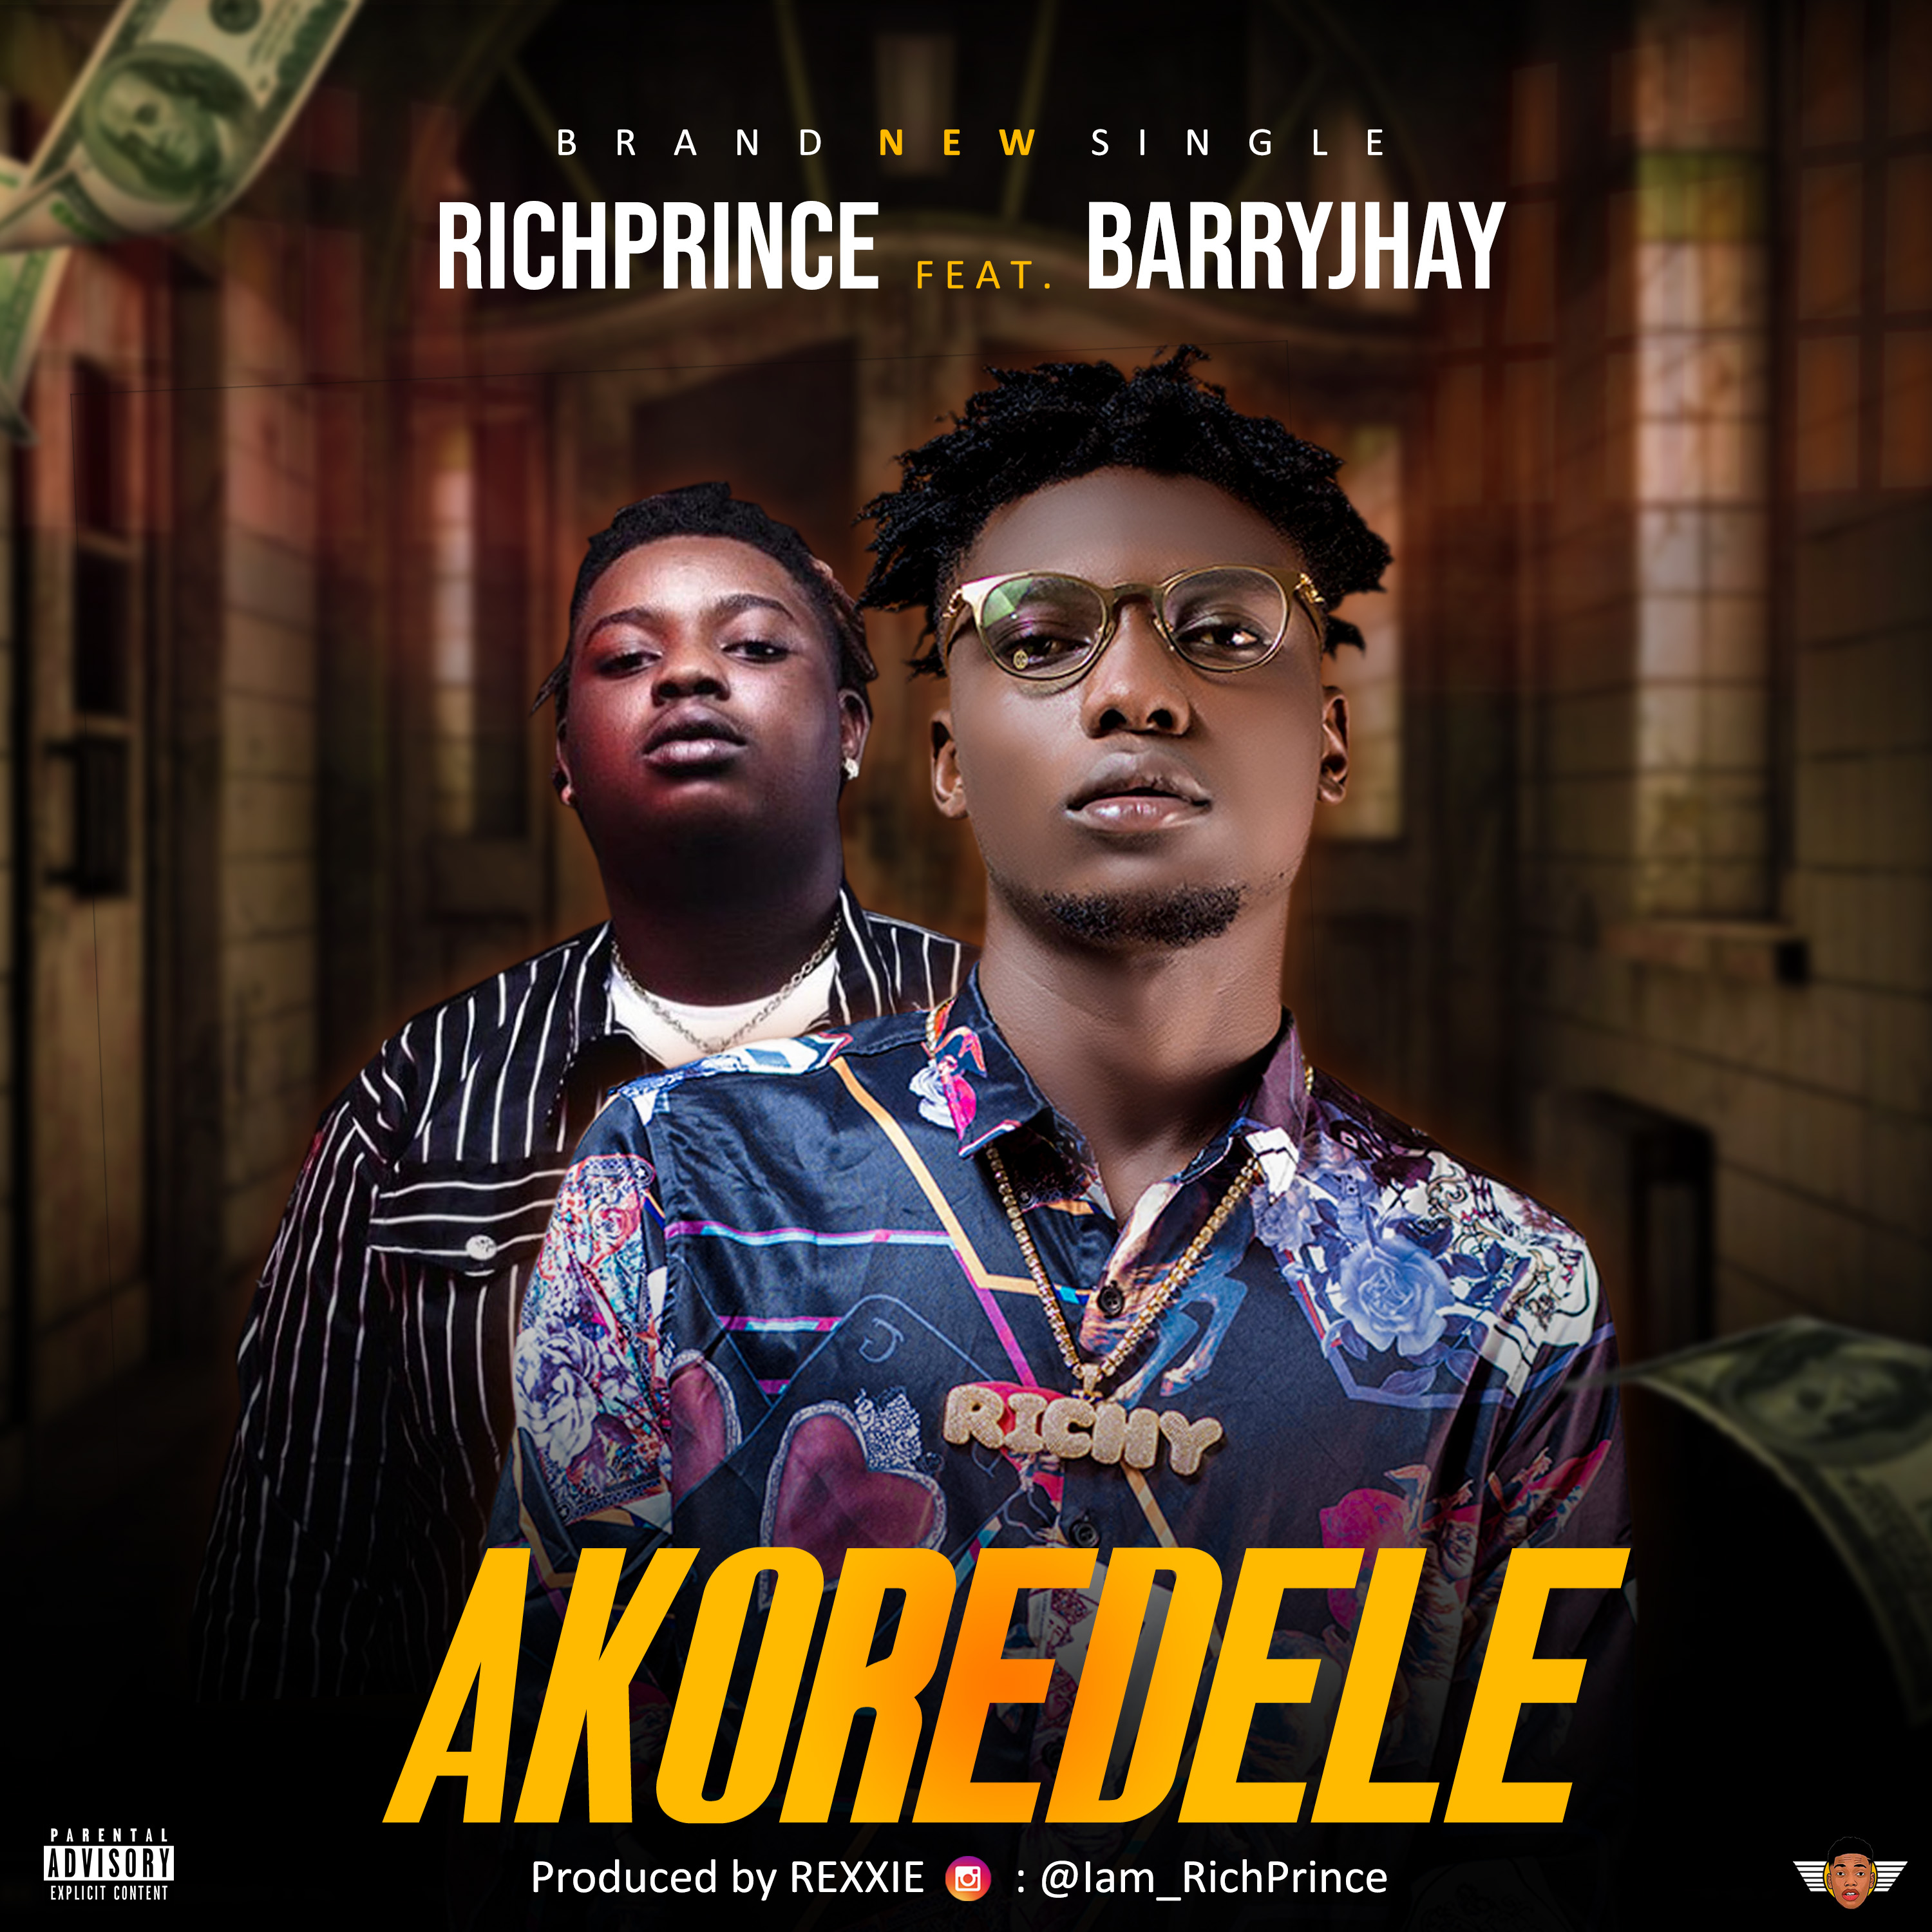 RichPrince ft. Barry Jhay – Akoredele (Prod. by Rexxie)